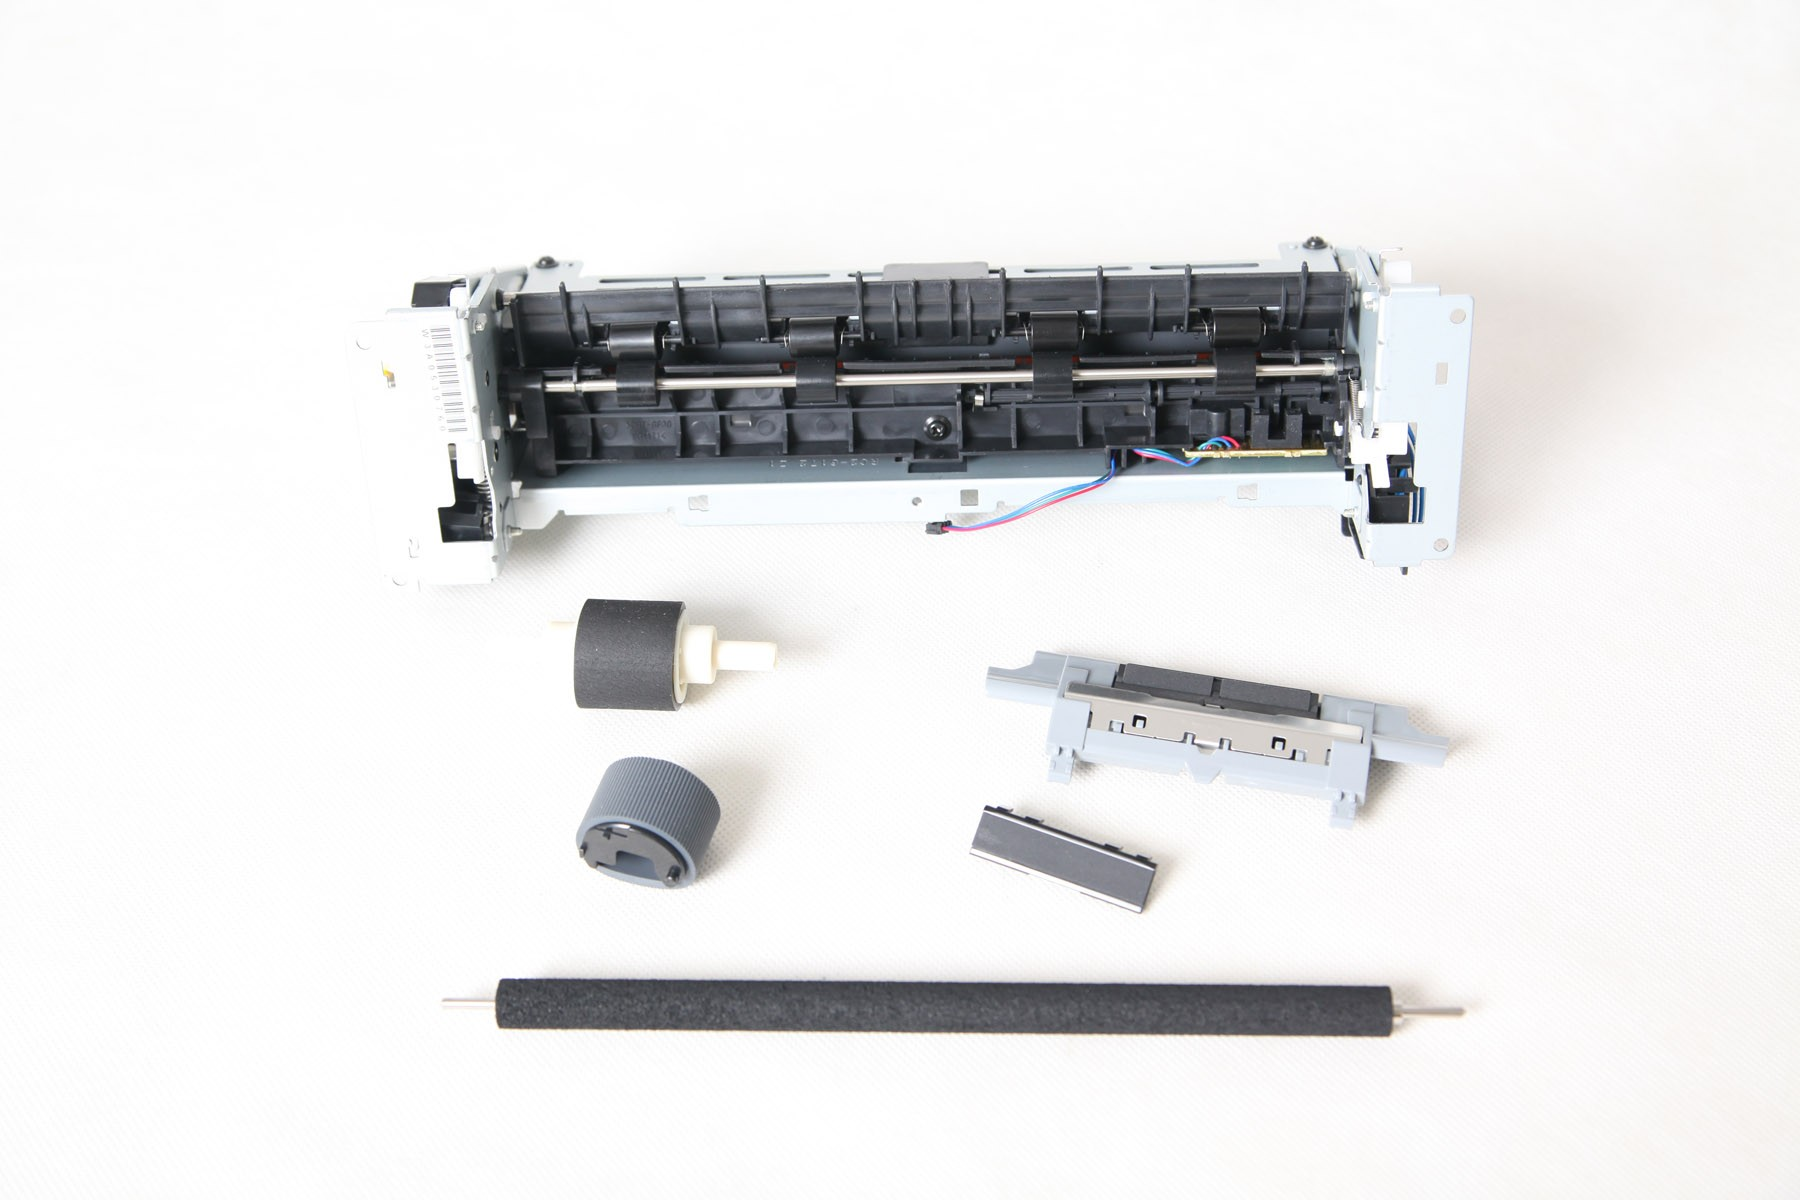 KIT-Maint-P2035 | HP LaserJet P2035/P2055 Maintenance Kit Refurbished Exchange